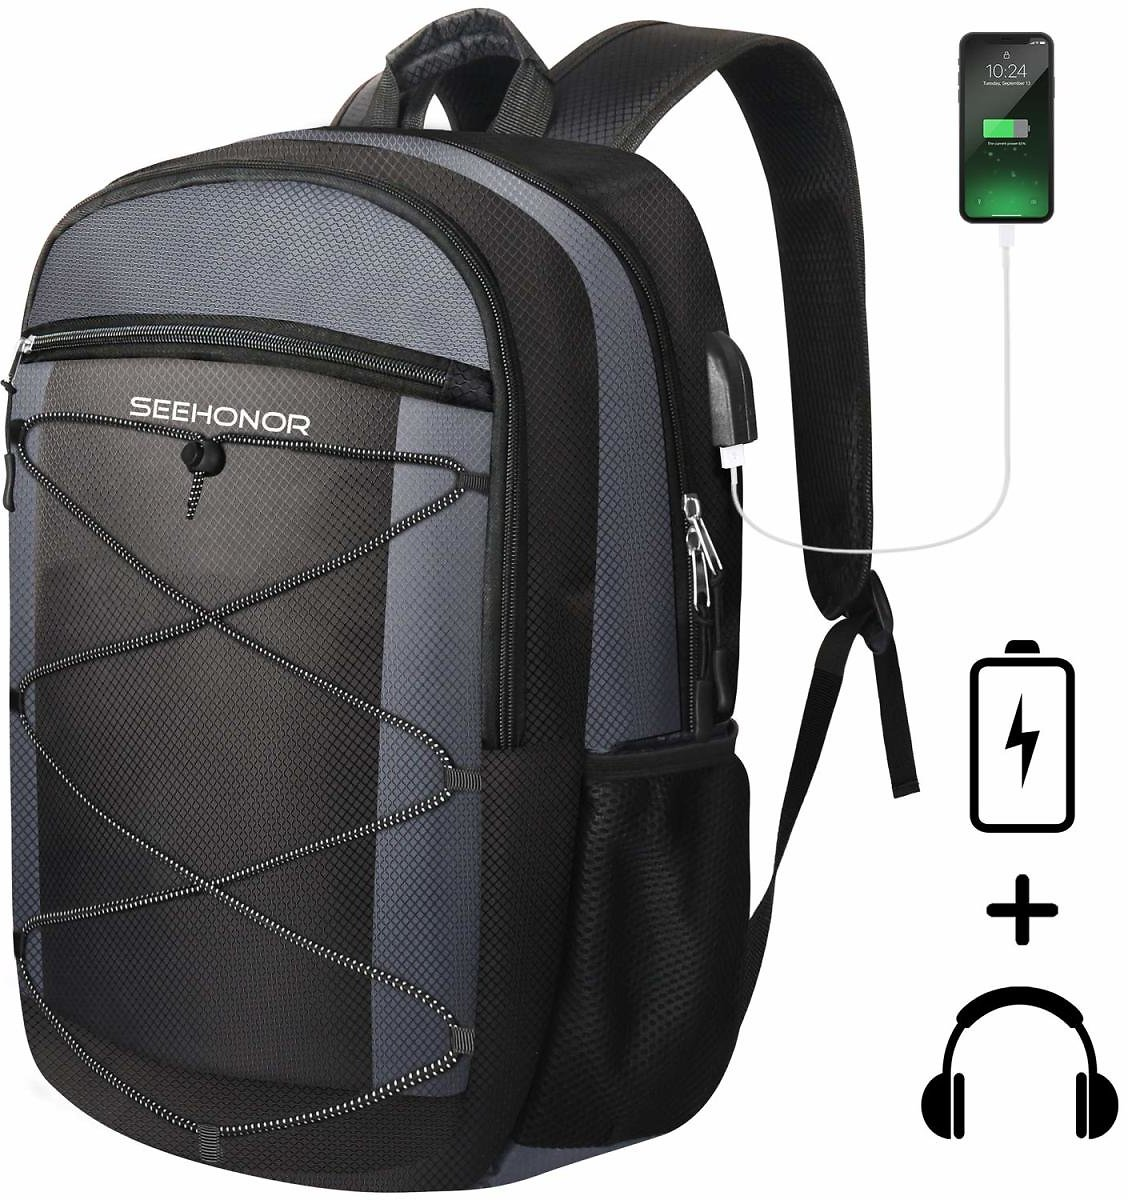 Laptop Backpack, SEEHONOR Travel Laptop Backpack with USB Charging Port, 15.6 Inch Slim Business Computer Backpack for Men Women